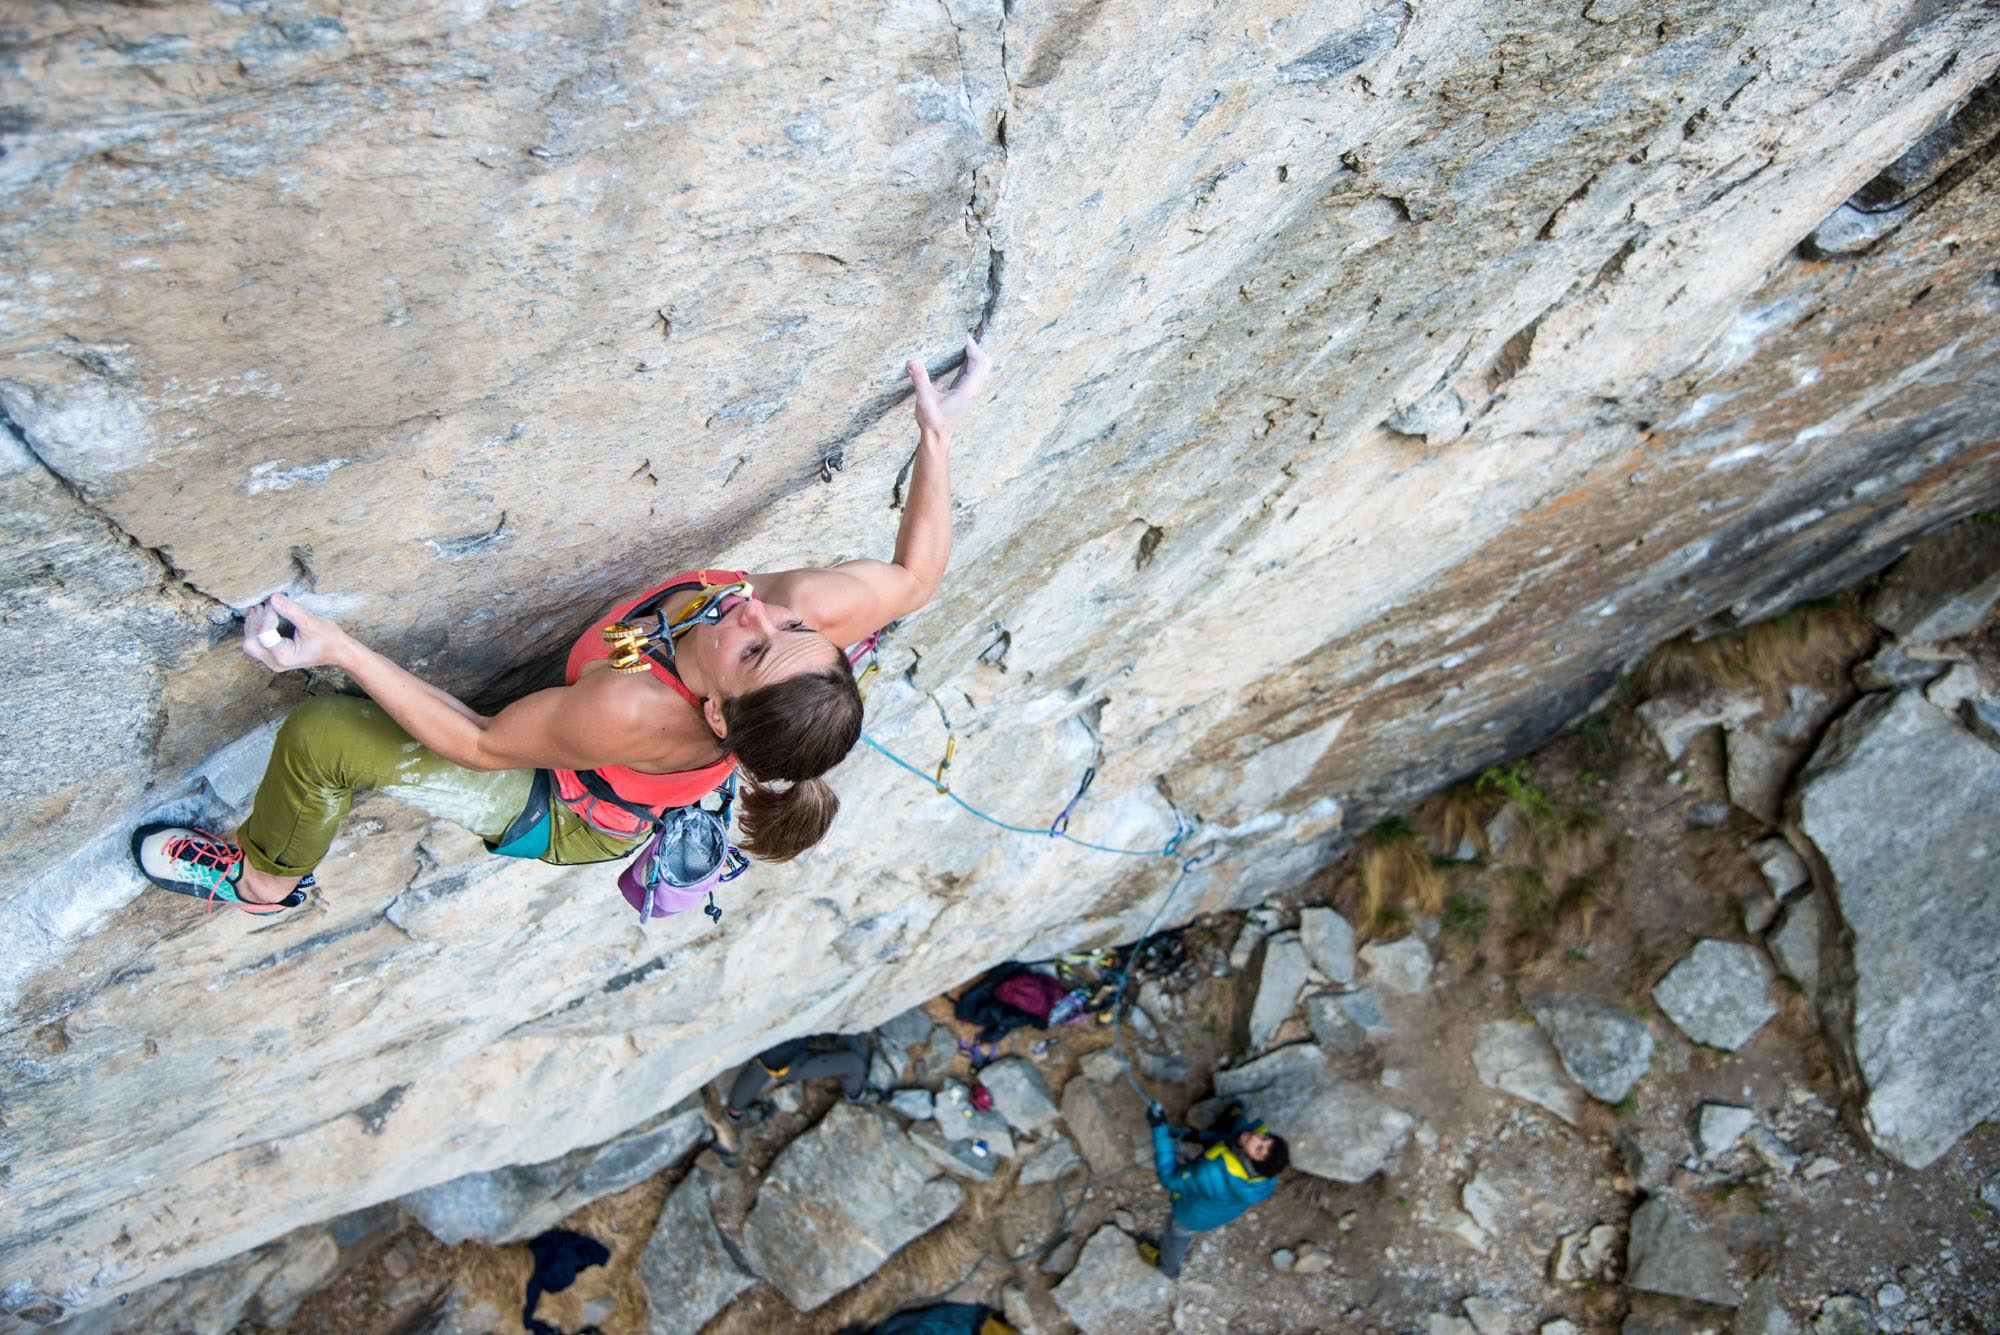 Barbara Zangerl carries a cam in her mouth to save energy for placing it during her greenpoint bid of Switzerland's Gondo Crack (5.14b R). The route was bolted 15 years ago and remained unclimbed until the end of March when Zangerl and her partner, Jacopo Larcher, did the first ascents using the bolts. In early April the two then sent the route using removable protection, skipping the bolts and risking huge falls from the crux. [Photo] Richard Felderer